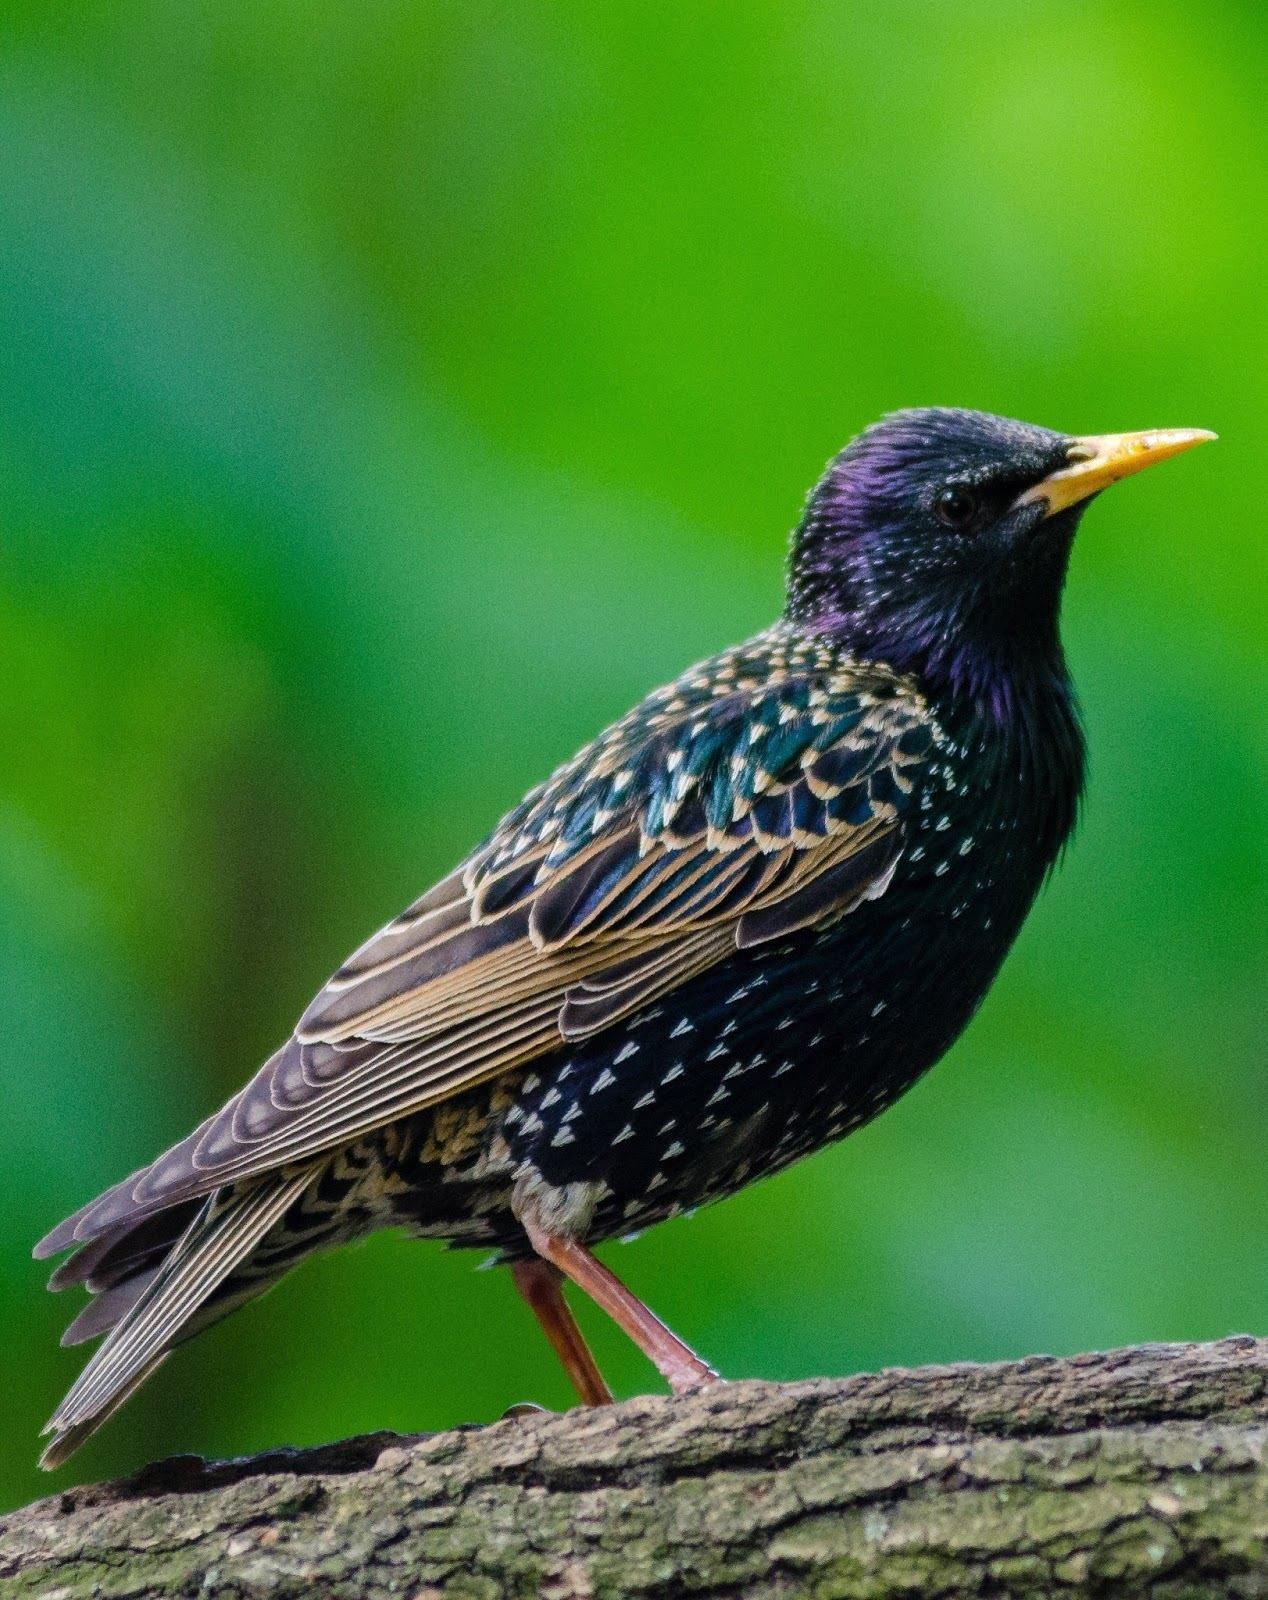 Picture of a European starling bird.